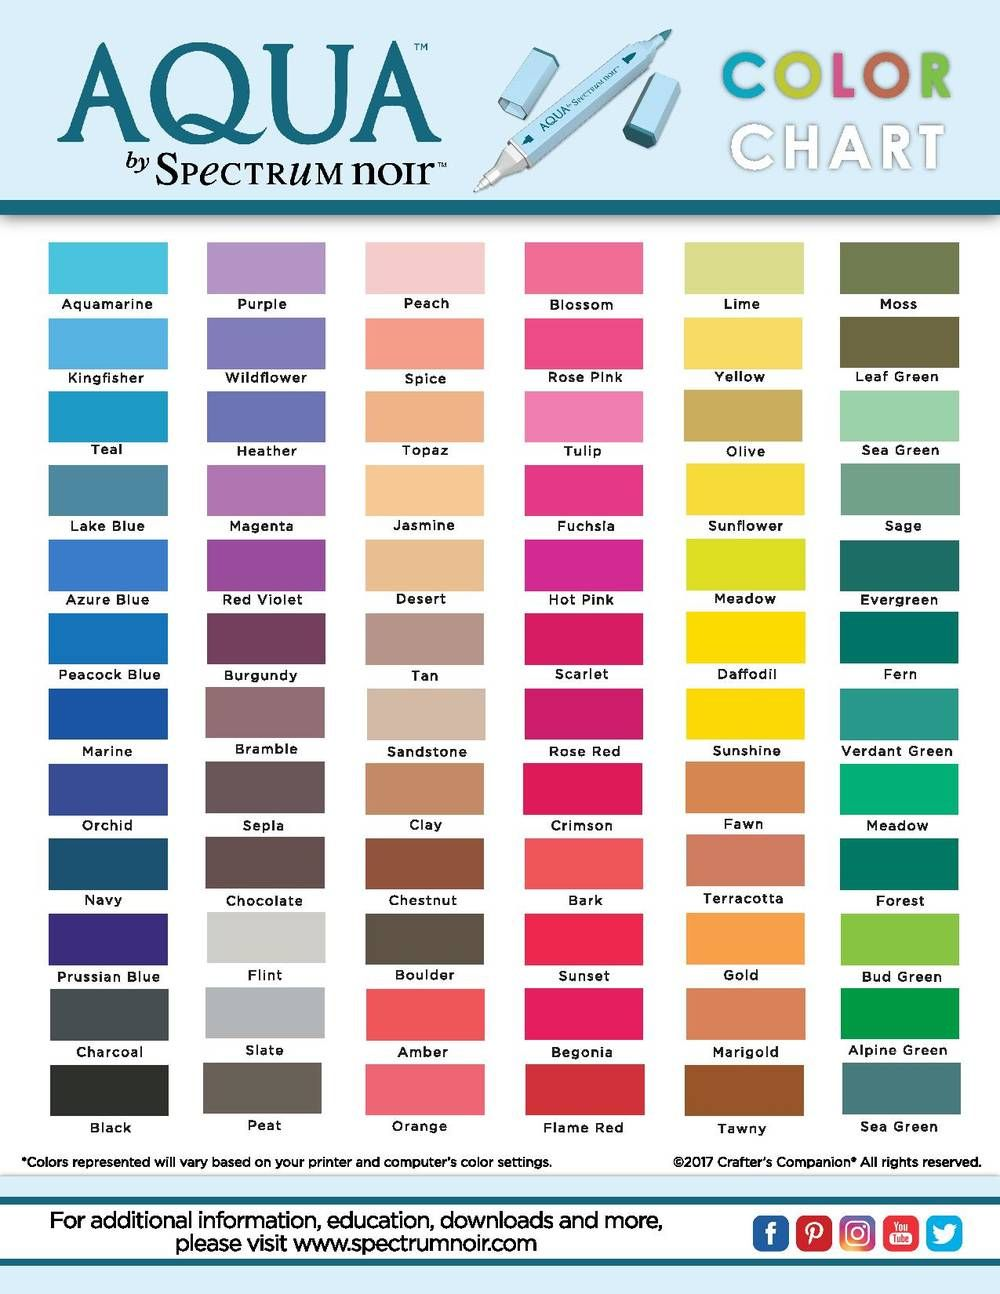 picture regarding Free Printable Color Chart titled Totally free Printable Spectrum Noir Colour Charts Variables in the direction of comprehend